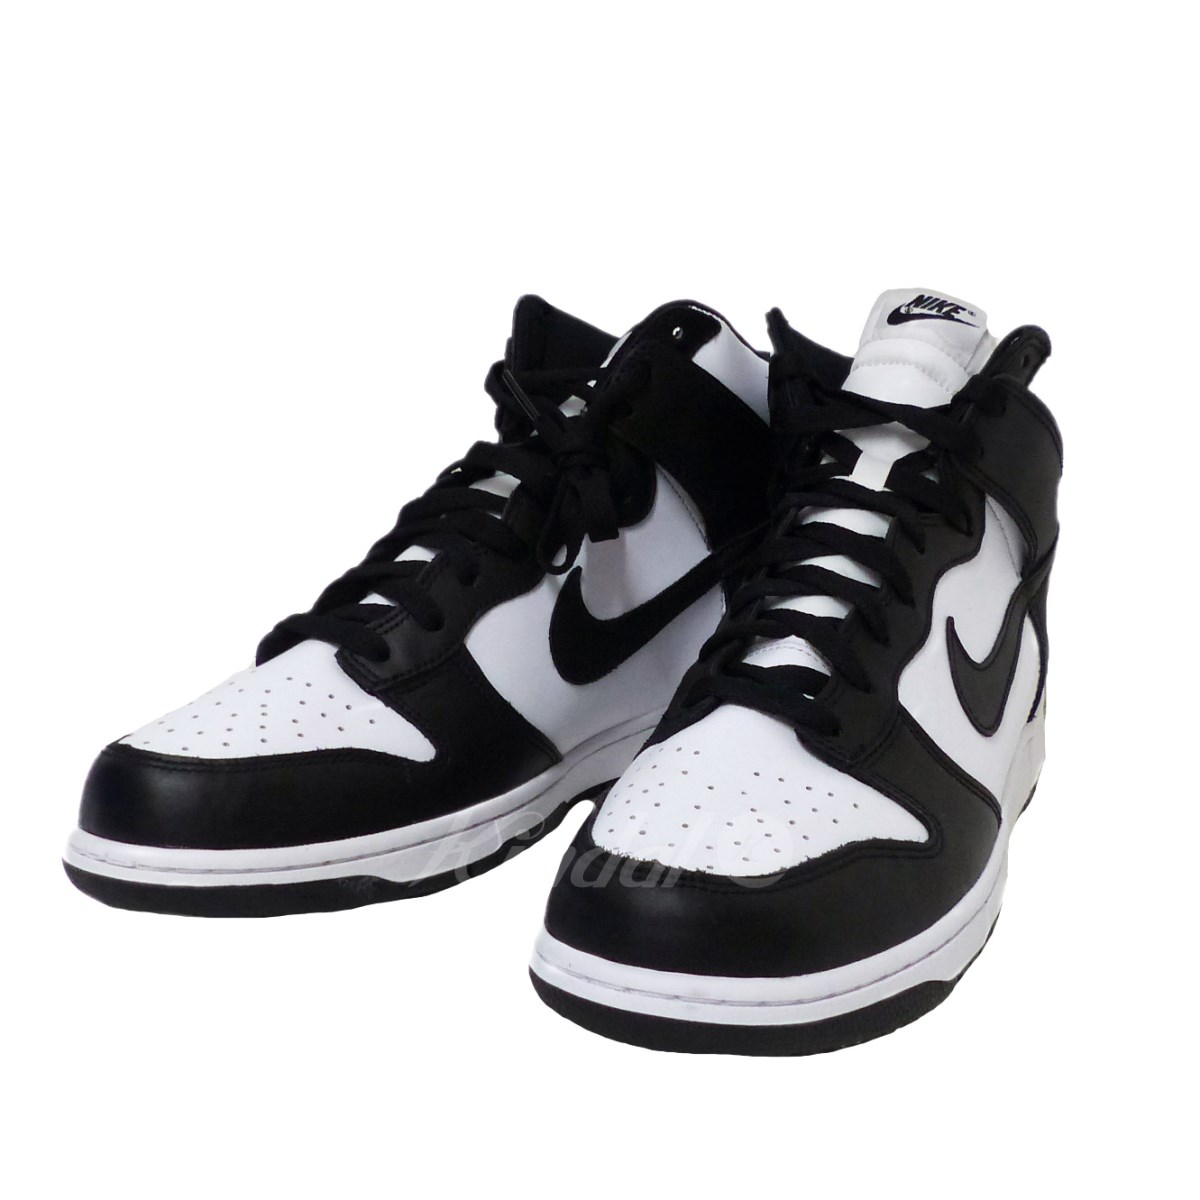 brand new 63df3 c1f37 ... buy nike dunk high retro sneakers white x black size us10. 5 nike 2fe24  3fae5